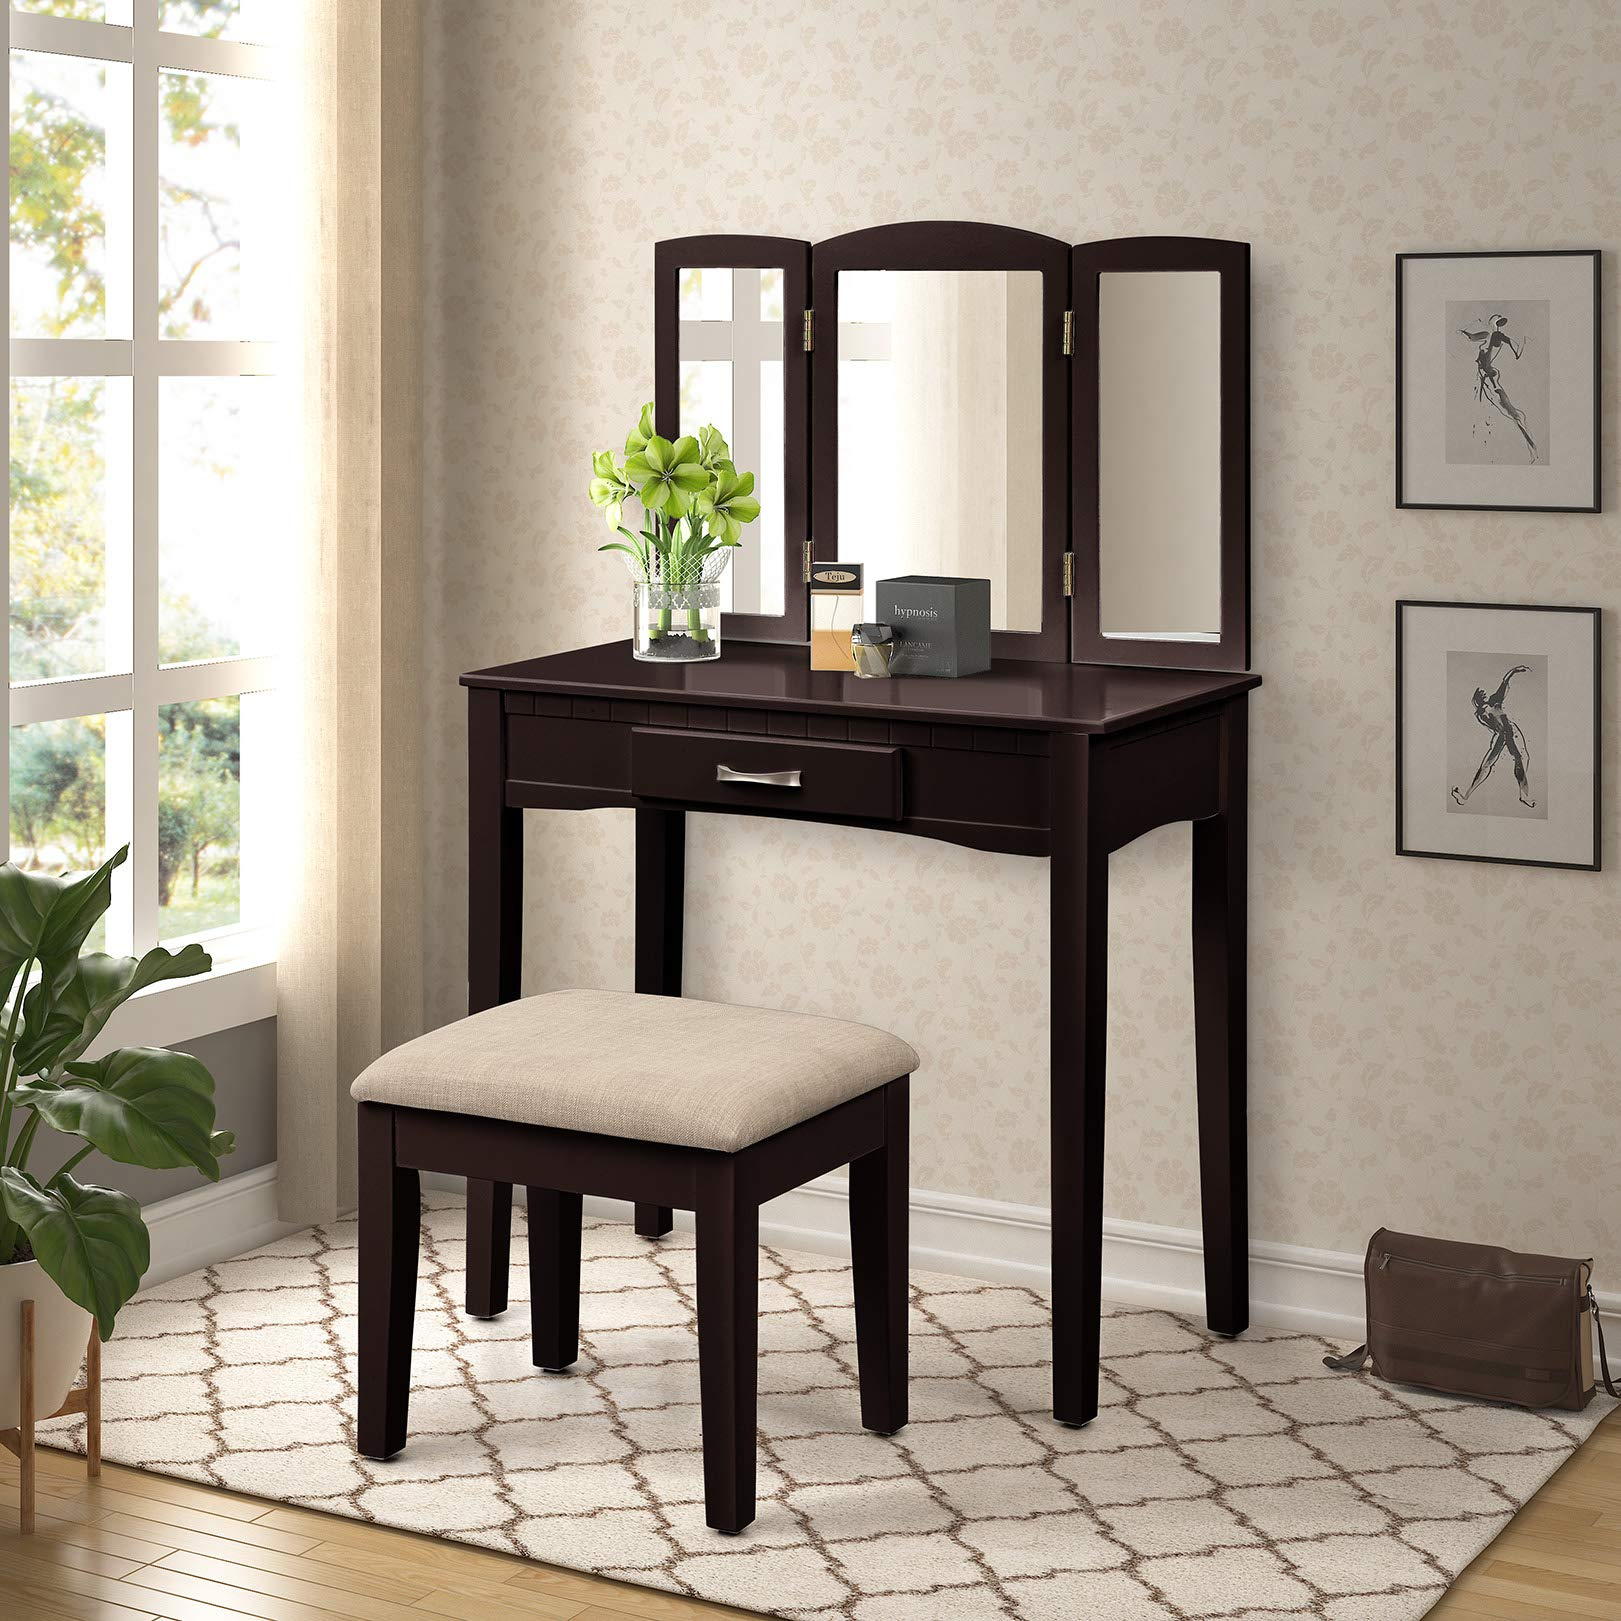 Harper & Bright Designs Vanity Set Make-up Dressing Table with Mirror and Cushioned Vanity Stool (Espresso 3)